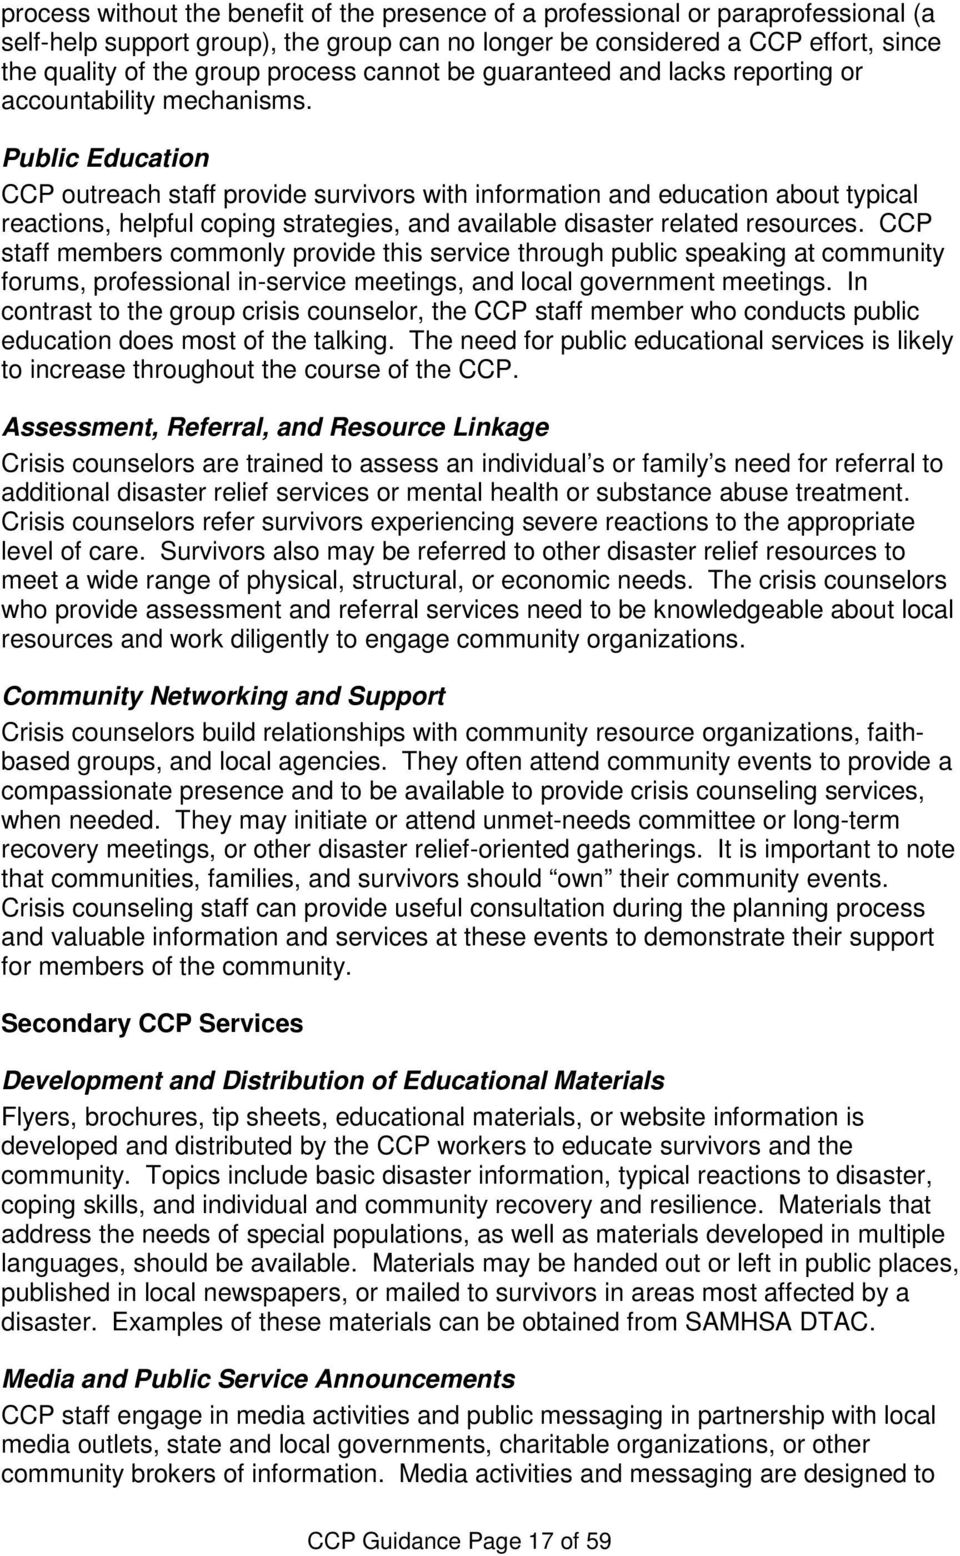 21BPublic Education CCP outreach staff provide survivors with information and education about typical reactions, helpful coping strategies, and available disaster related resources.